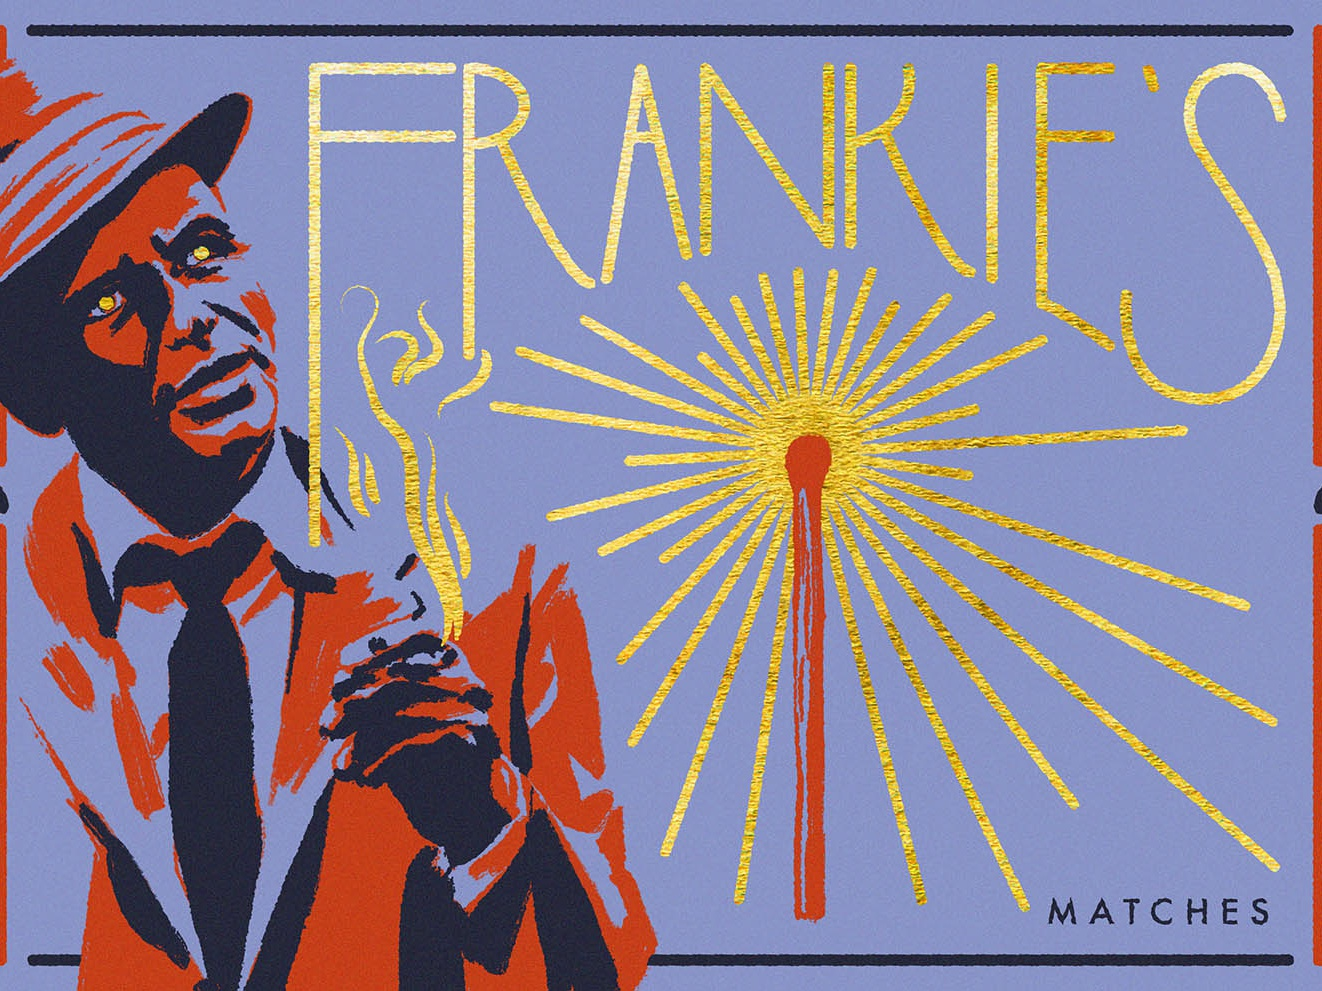 Frankies's Matches art deco gold illuustration vintage art matchbox portrait adobe illustrator adobe photoshop digital illustration sinatra matches